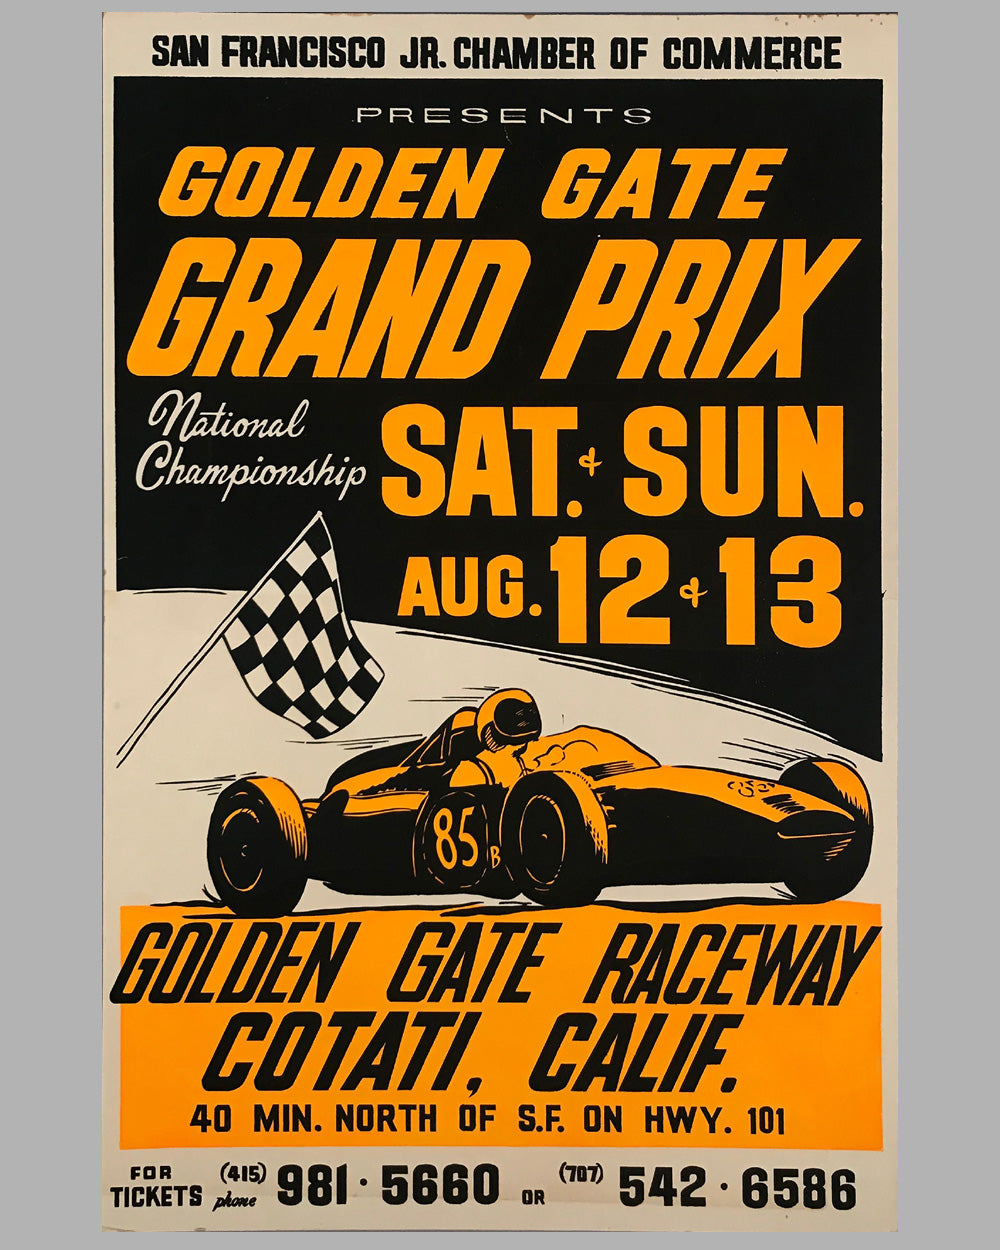 Golden Gate Grand Prix original advertising poster, 1967